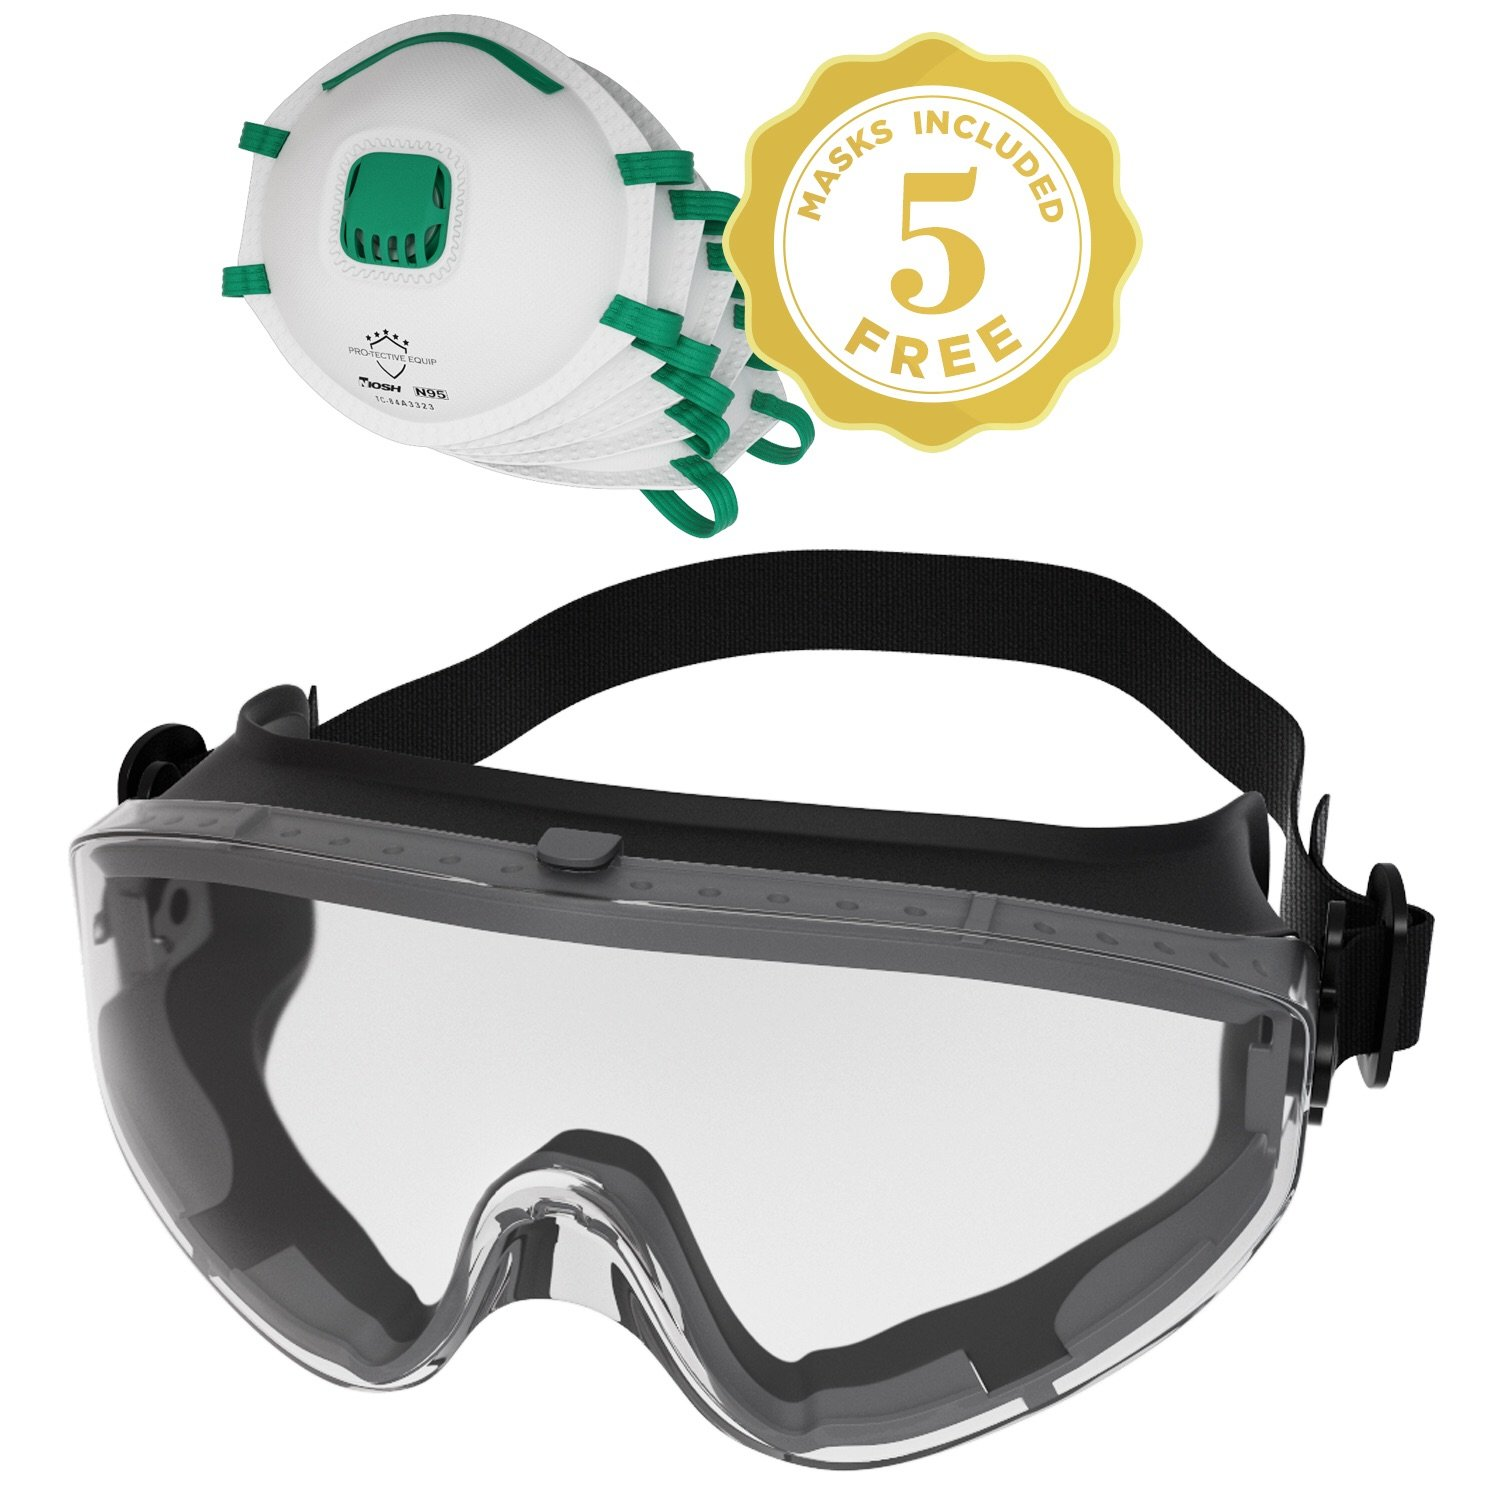 Safety Goggles Fits Over Prescription Glasses Clear Anti Fog Anti Scratch Impact Splash Proof For Workplace Chemistry Lab ANSI Z87.1 Approved Safety Masks With Respirator NIOSH N95 Included (Large) by PRO-TECTIVE EQUIP